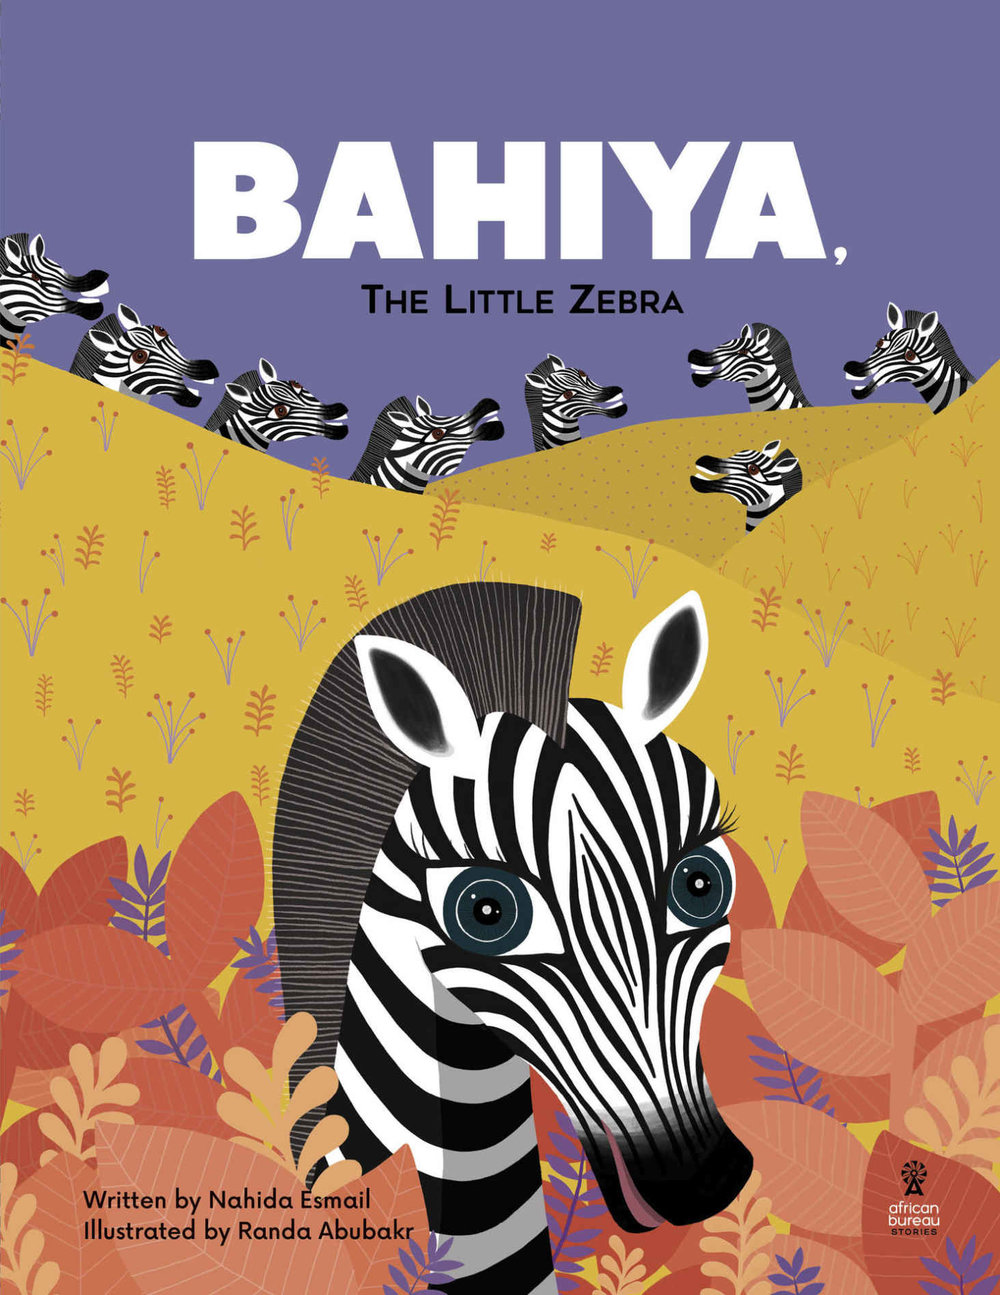 - Bahiya is a special little zebra but she doesn't want to have stripes like all the others. When she comes up with a quirky idea to look unique, she knows that her friend, Dalia the Hippo, can help. However, the little zebra returns home and no one seems to appreciate her stunning new look. Will Bahiya realise how special she is and accept her own stripes?